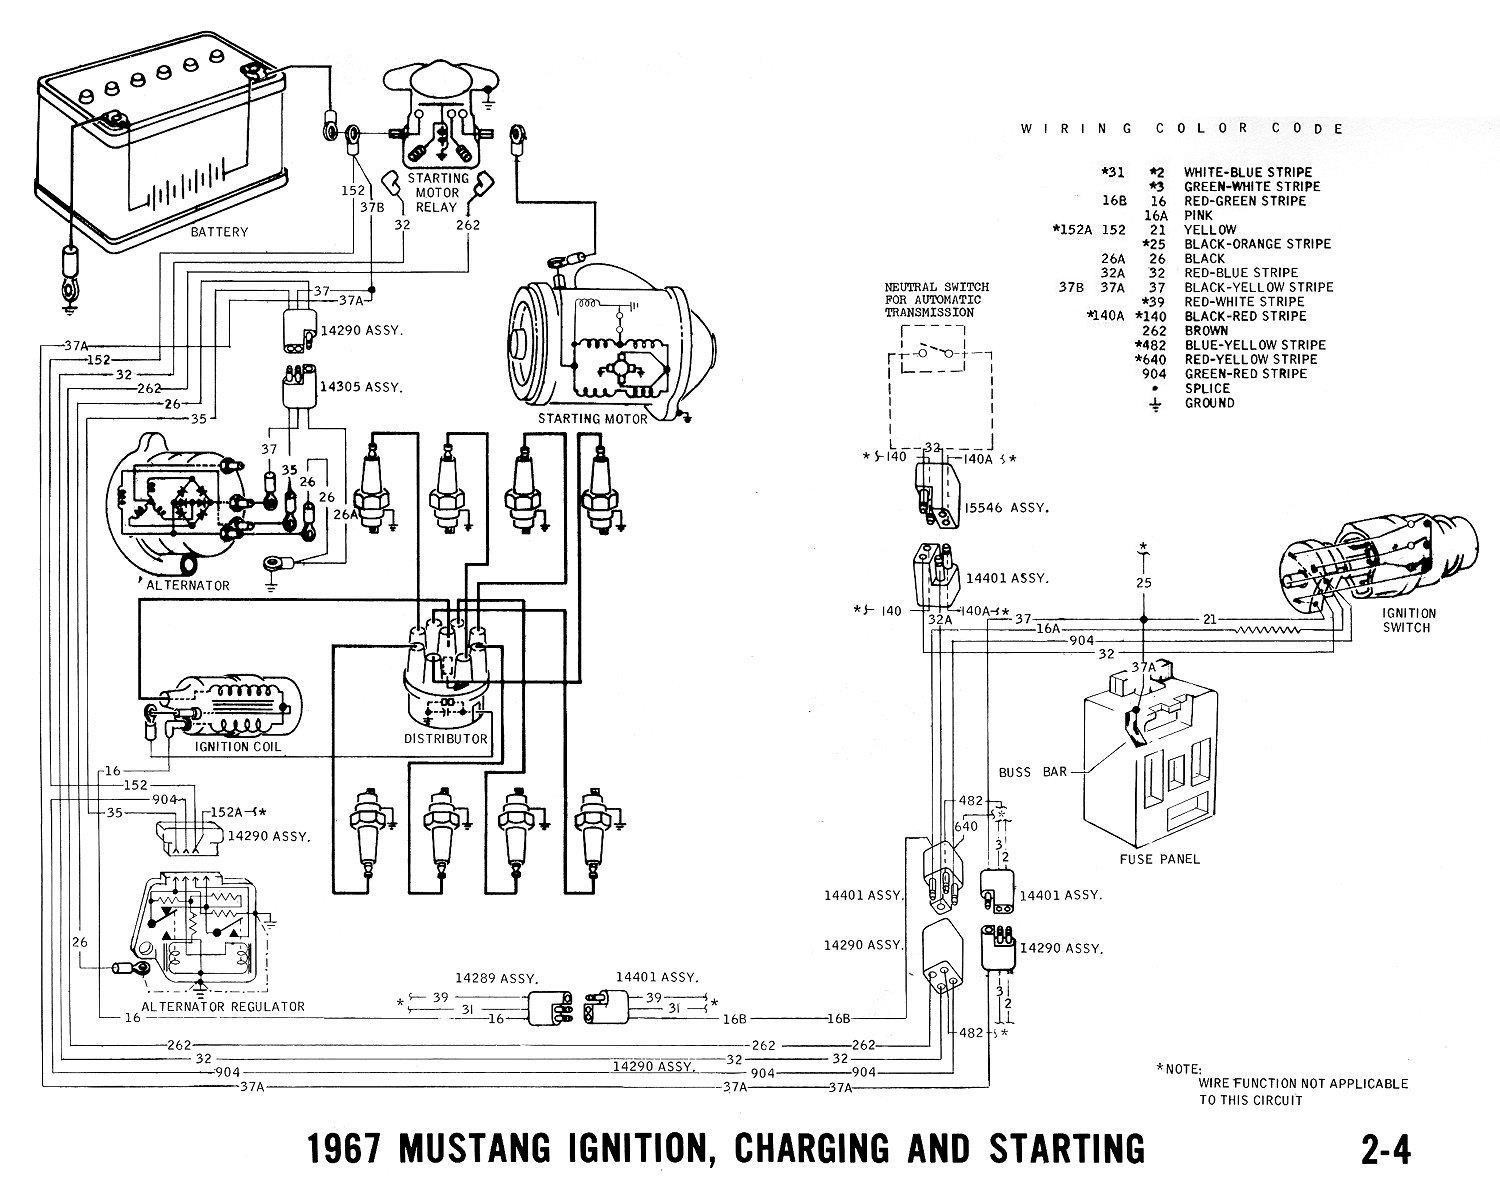 1987 Ford Alternator Wiring | Wiring Diagram  Mustang Alternator Wiring Diagram on 71 chevelle alternator wiring, 68 mustang alternator wiring, 93 mustang alternator wiring, 89 mustang alternator wiring, 68 camaro alternator wiring, 92 mustang alternator wiring, 1965 mustang alternator wiring, 93 ford alternator wiring, 86 mustang alternator wiring, 67 mustang alternator wiring, 91 mustang alternator wiring,